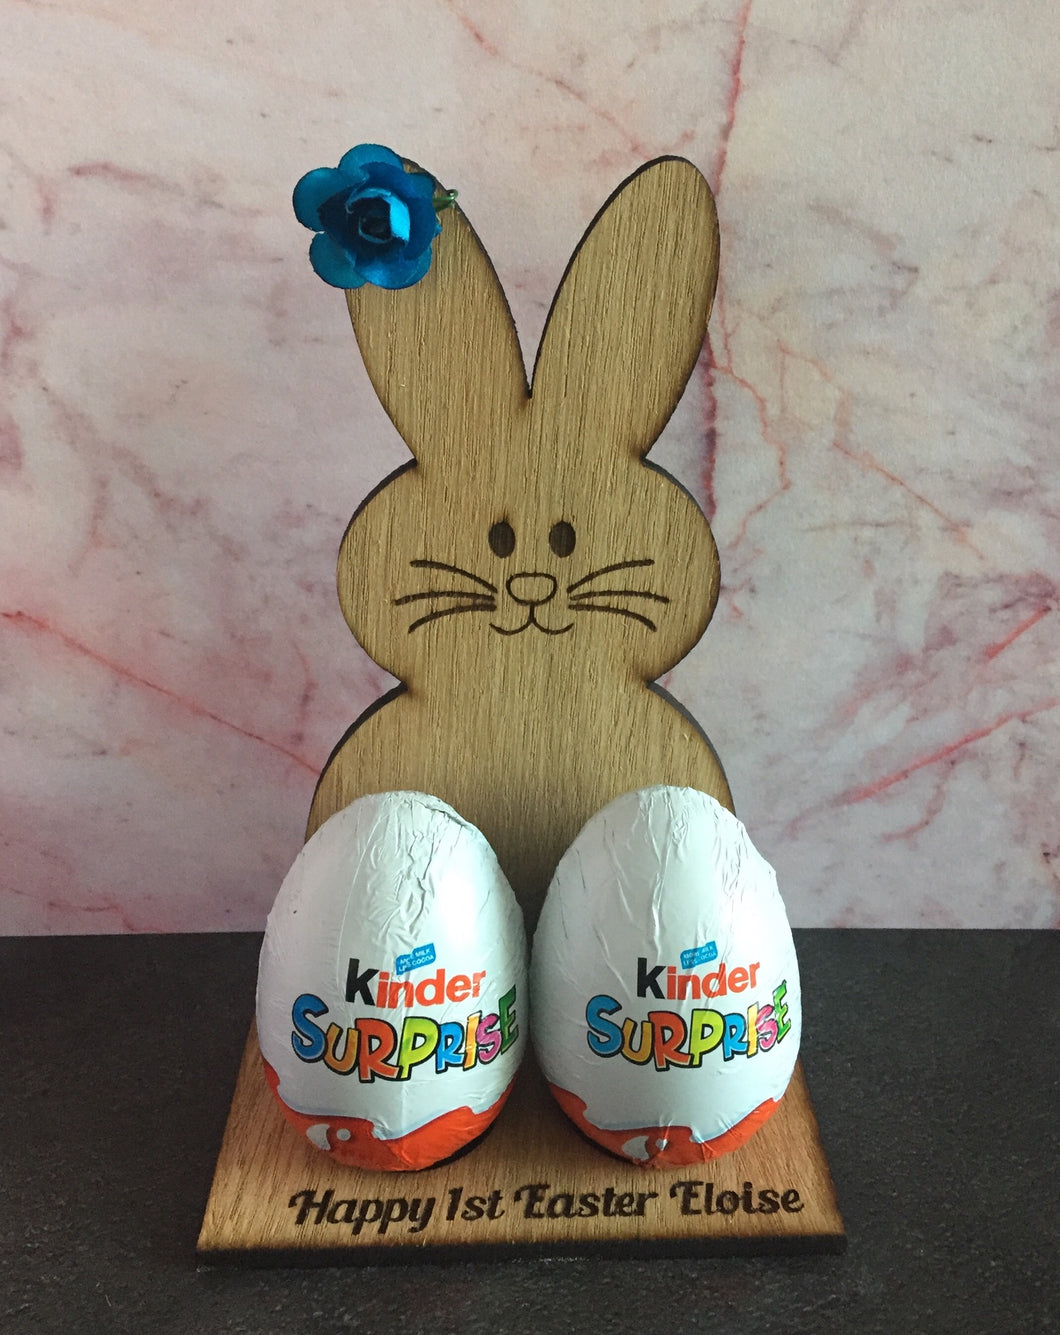 Oak veneer personalised bunny for chocolates eggs - Laser LLama Designs Ltd